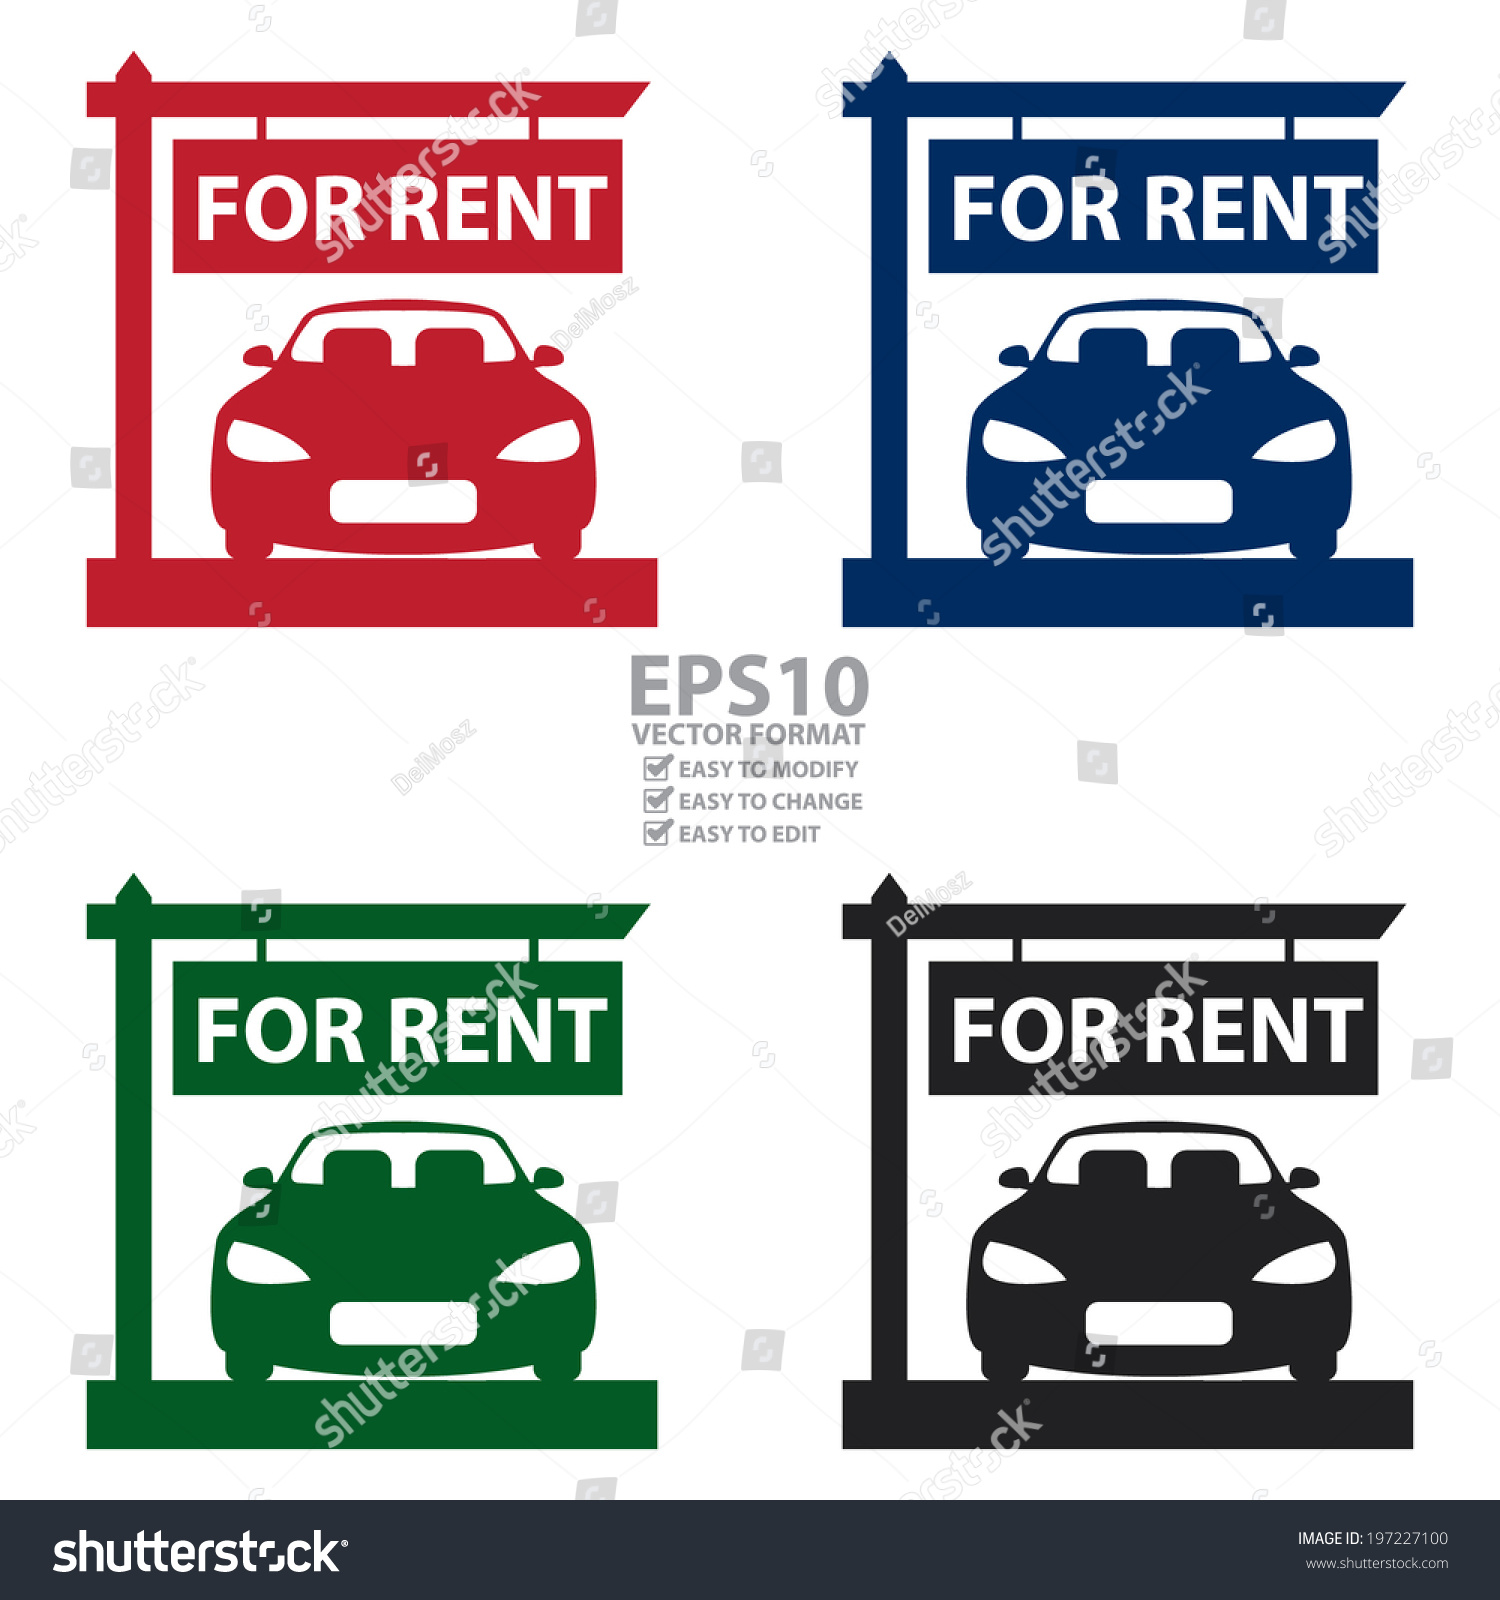 Vector Colorful Car Hire Car Rental Stock Vector 197227100